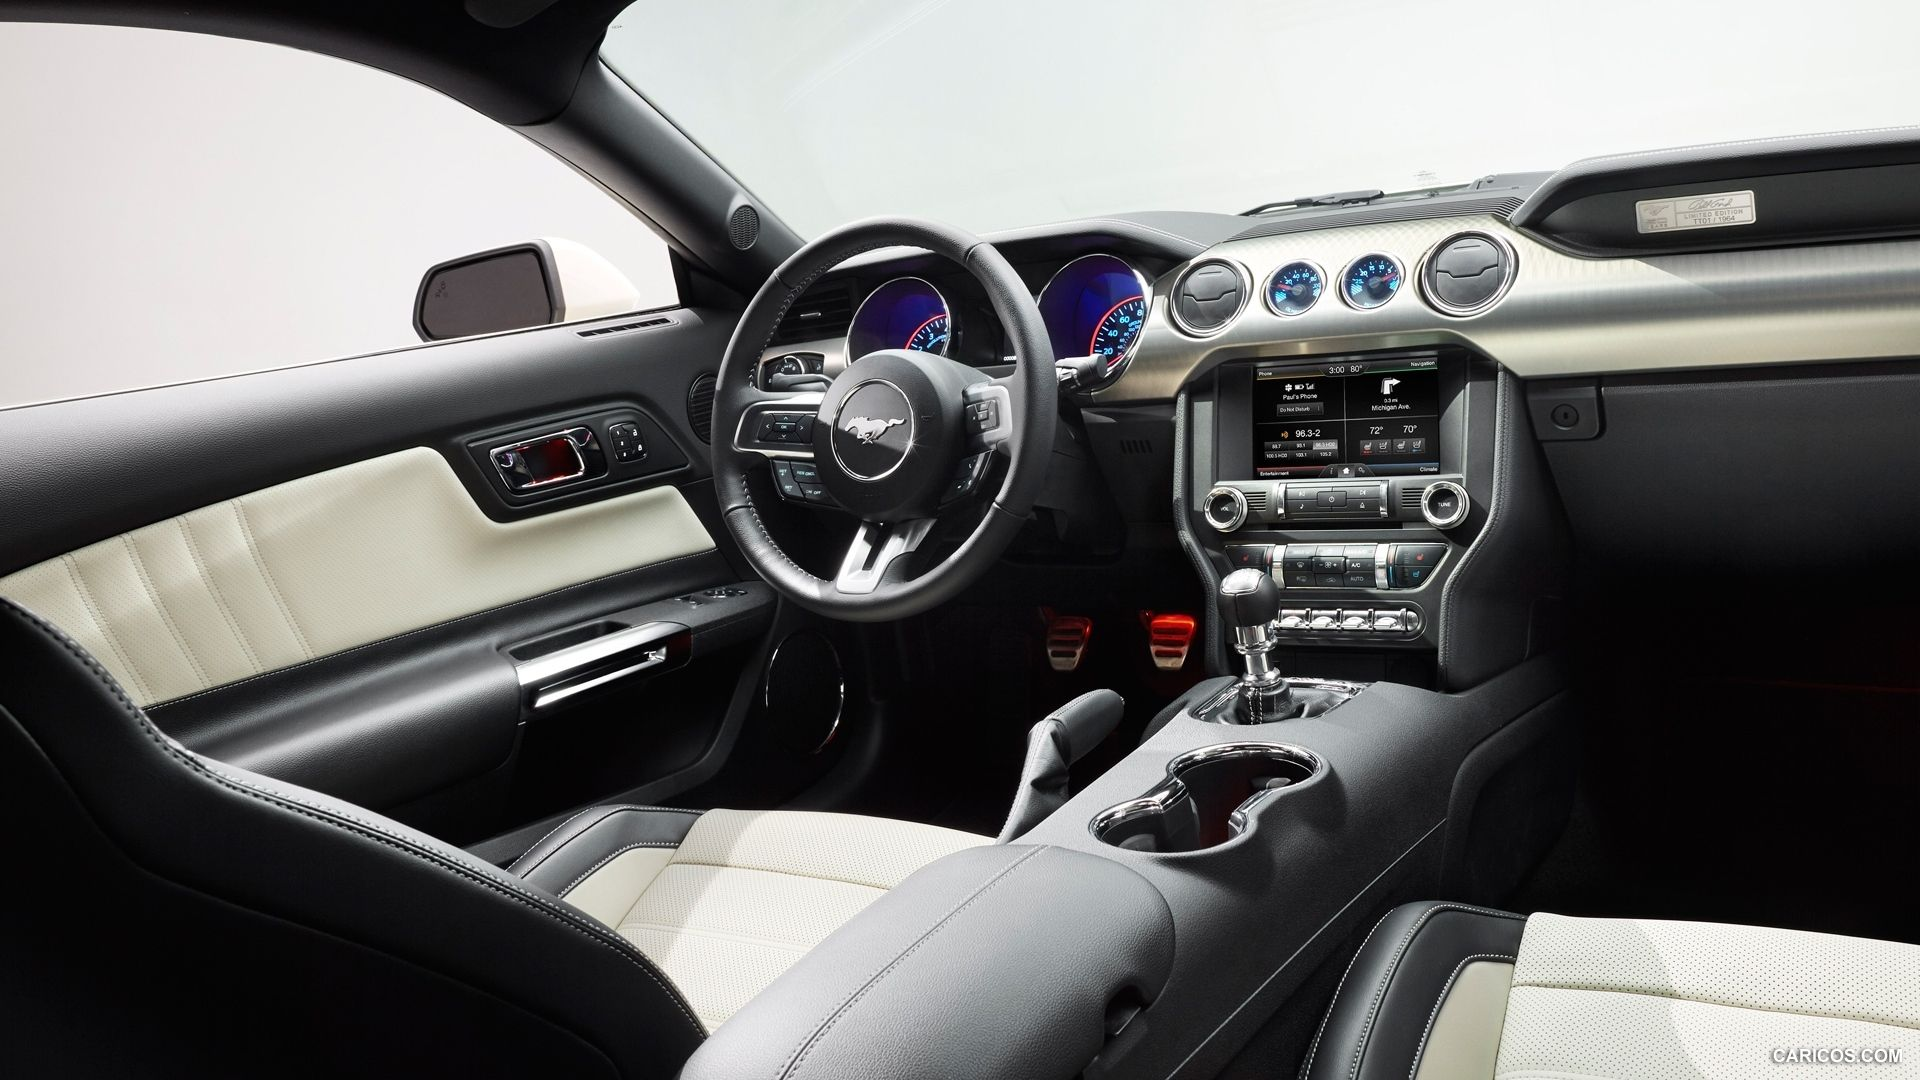 12 Insanely Beautiful 2015 Ford Mustang Interior 2015 Ford